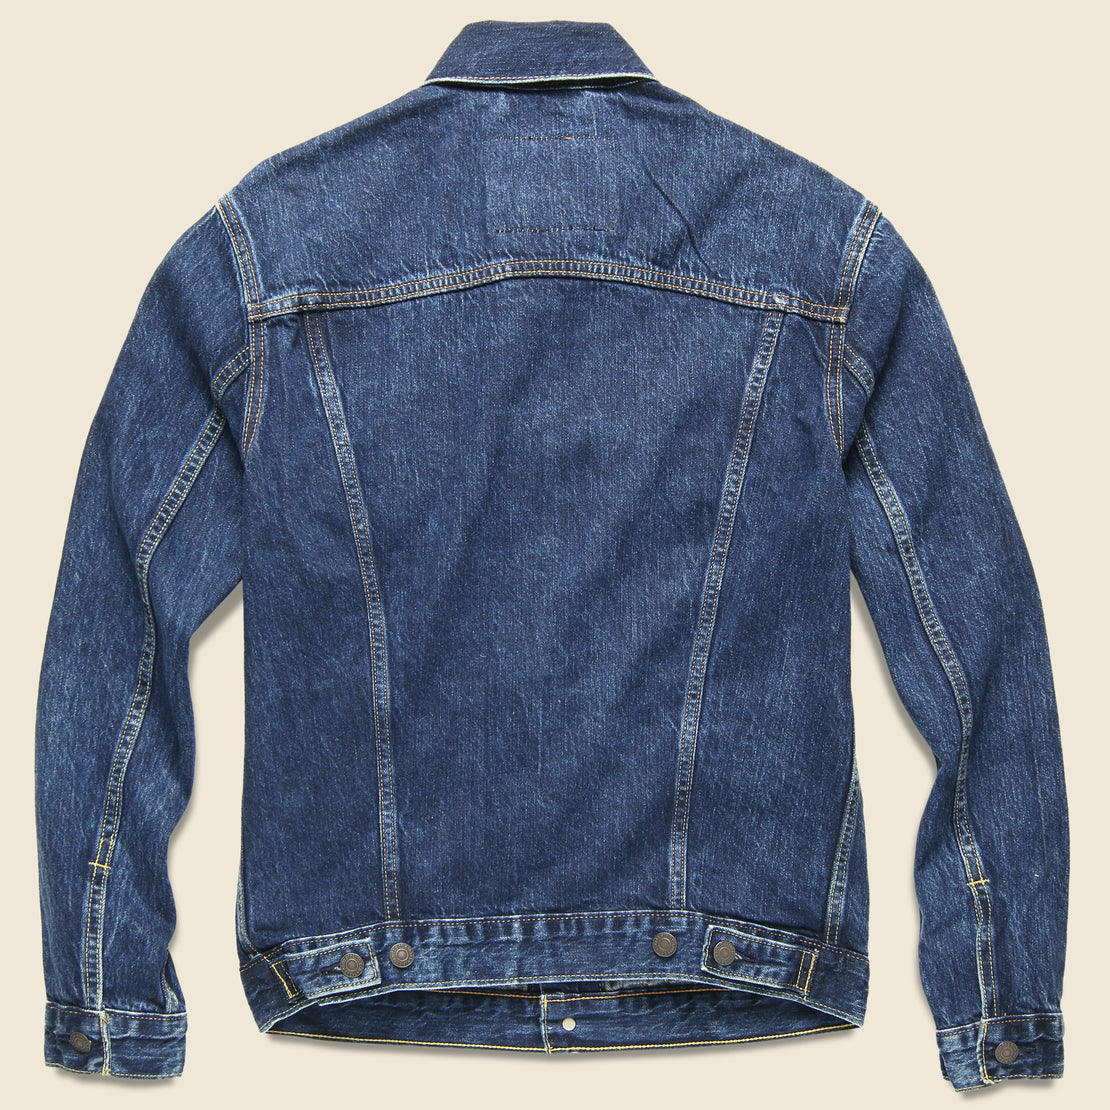 Trucker Jacket - Rough Rinse